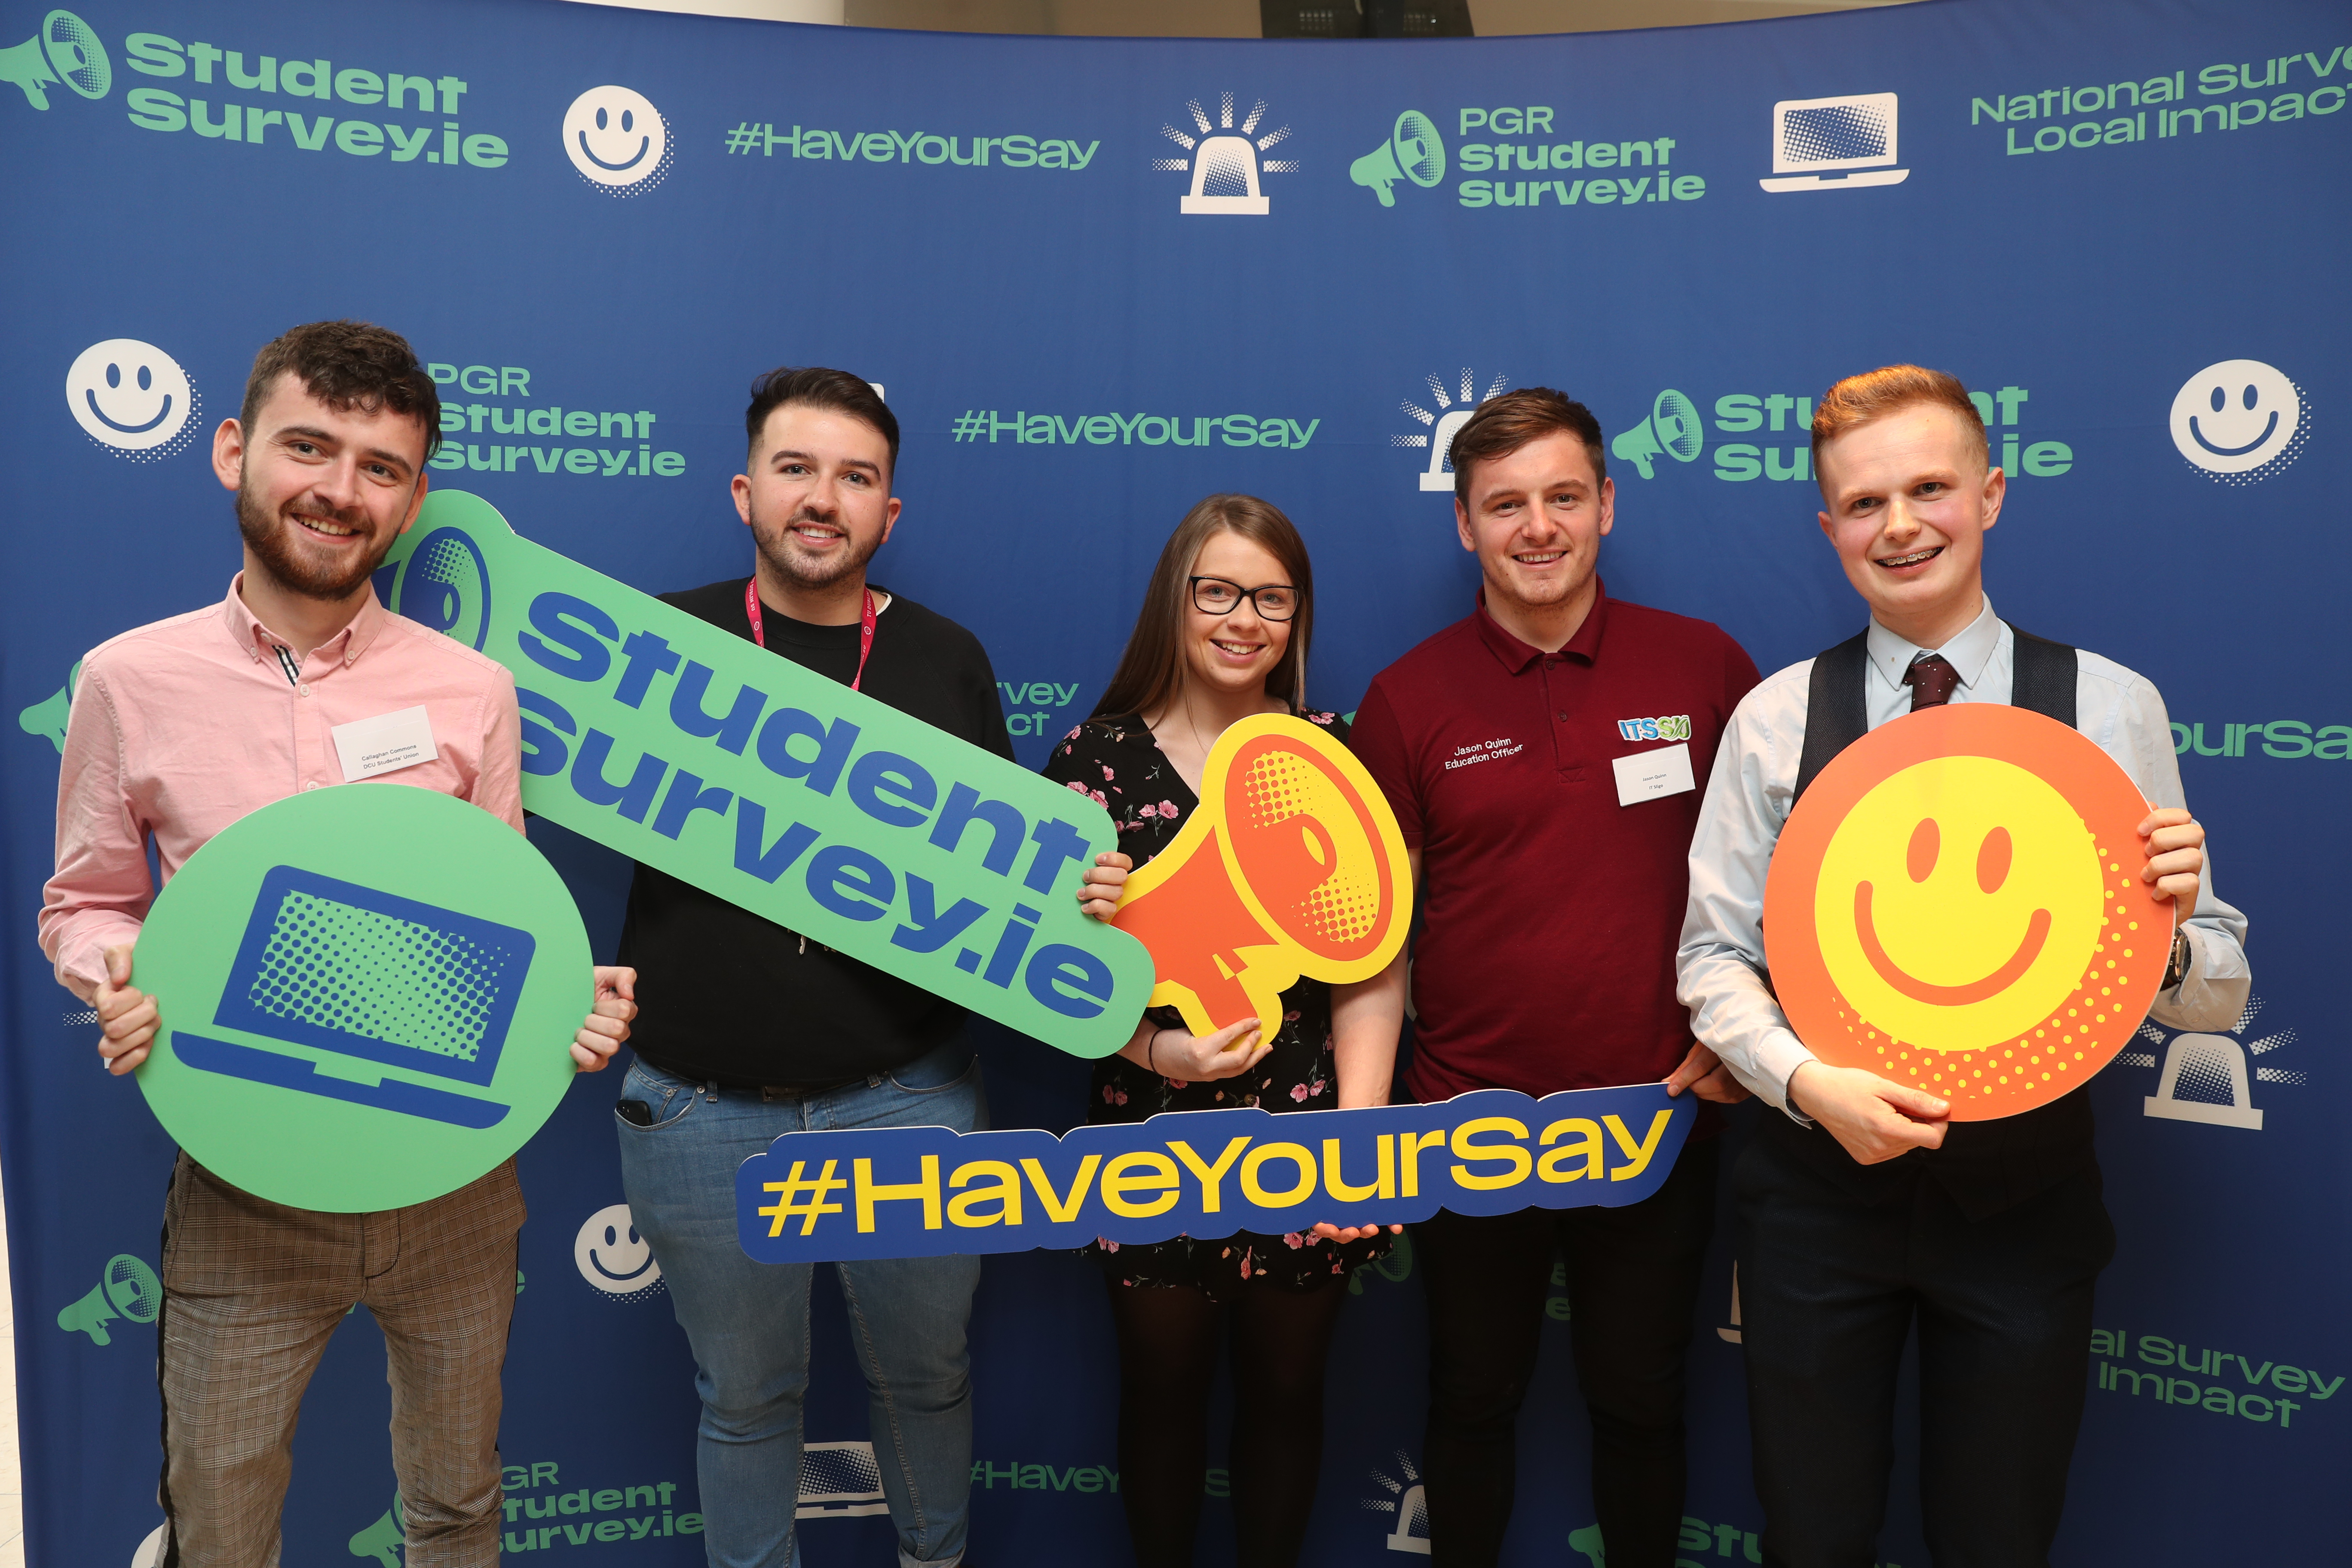 Student representatives at the launch